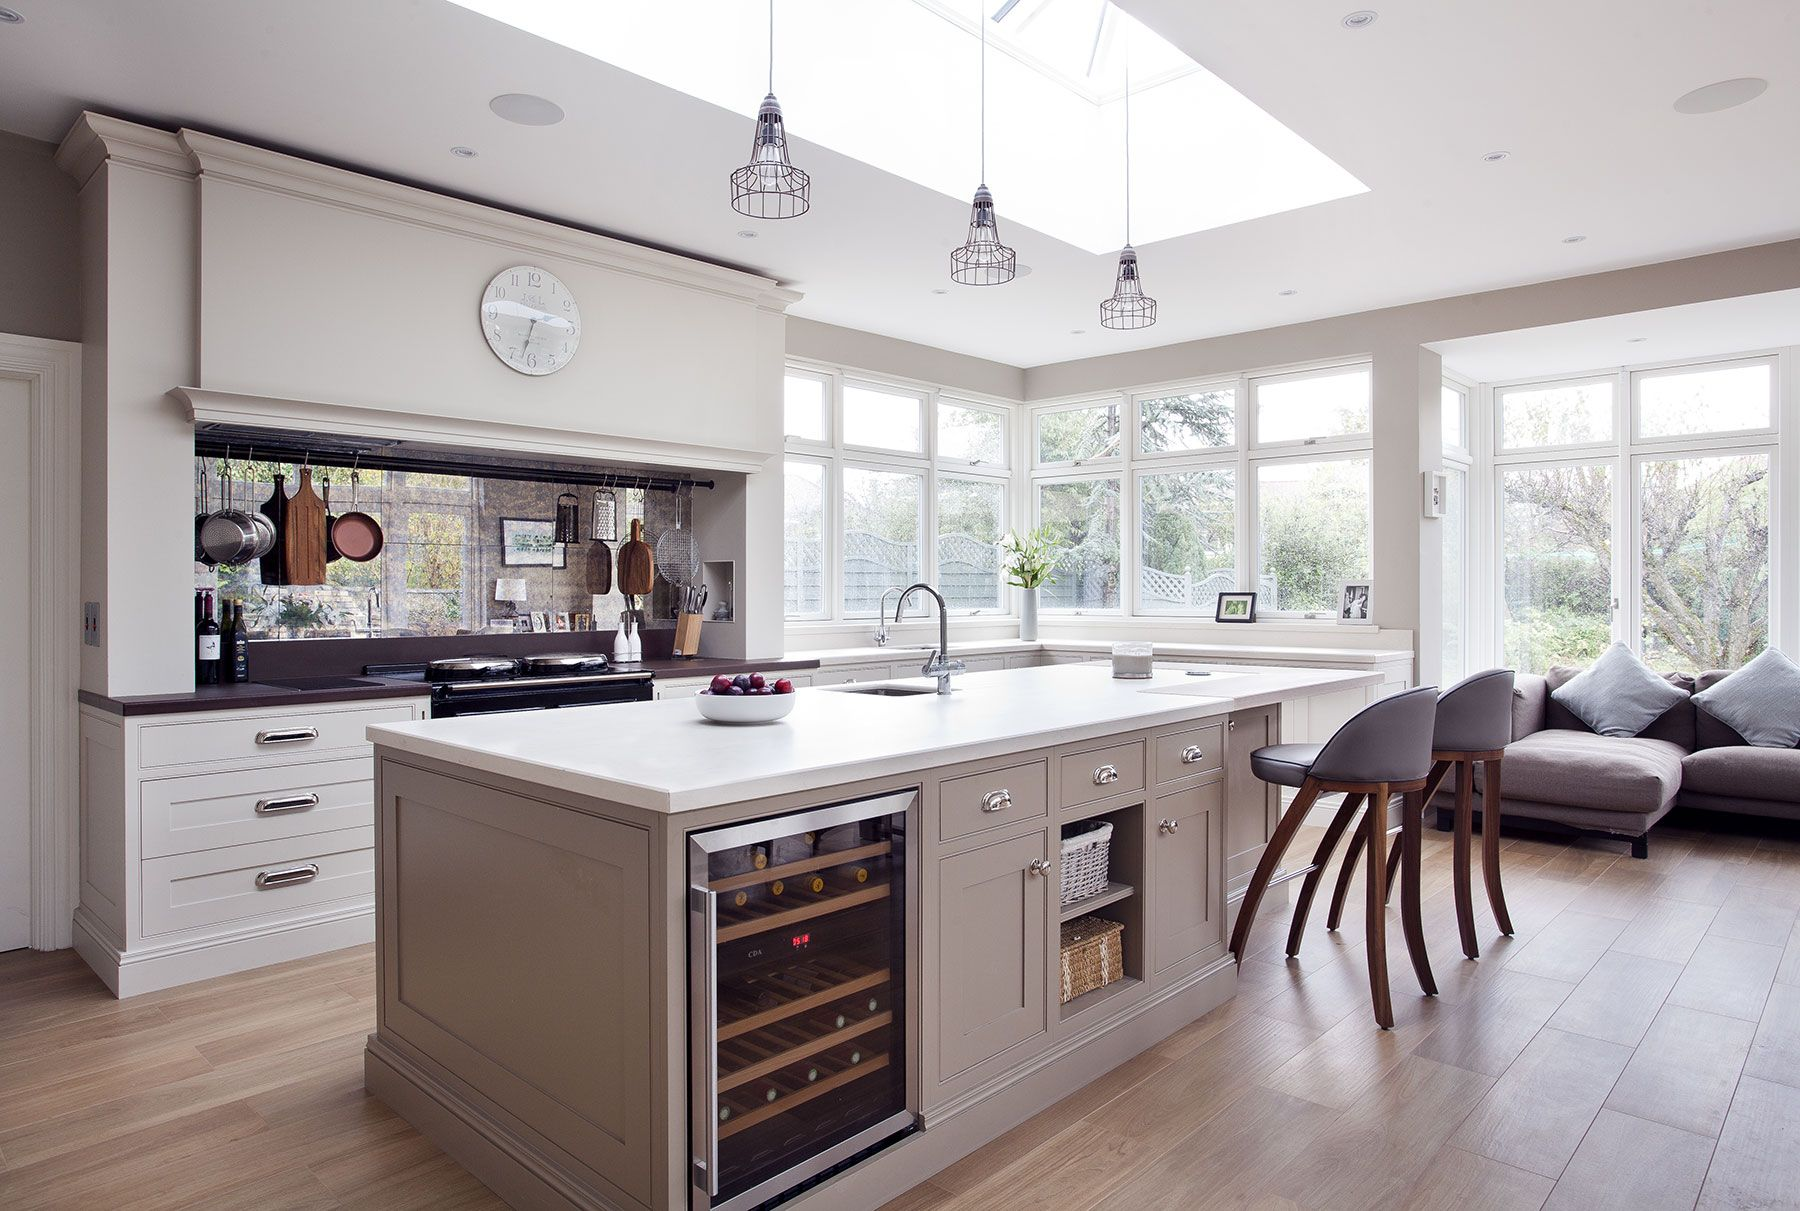 Handmade kitchen finished in Farrow & Ball and Little Greene paints ...